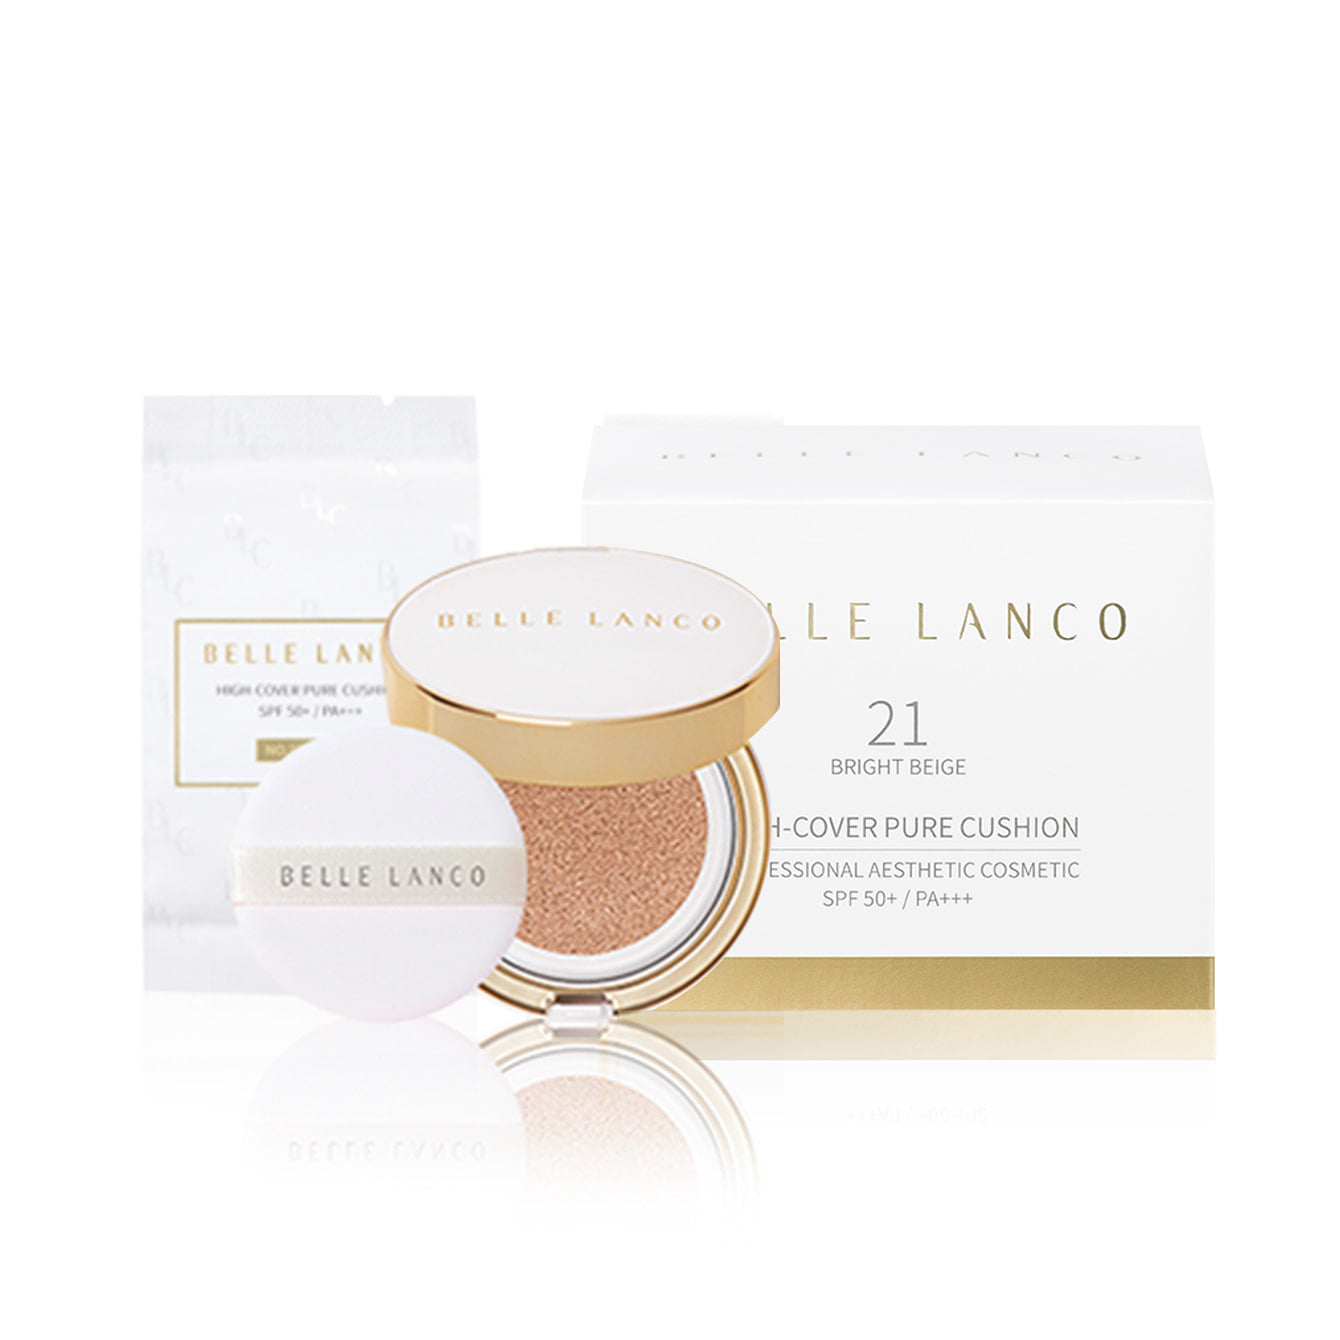 phan-nuoc-belle-lanco-high-cover-pure-cushion-review-thanh-phan-gia-cong-dung